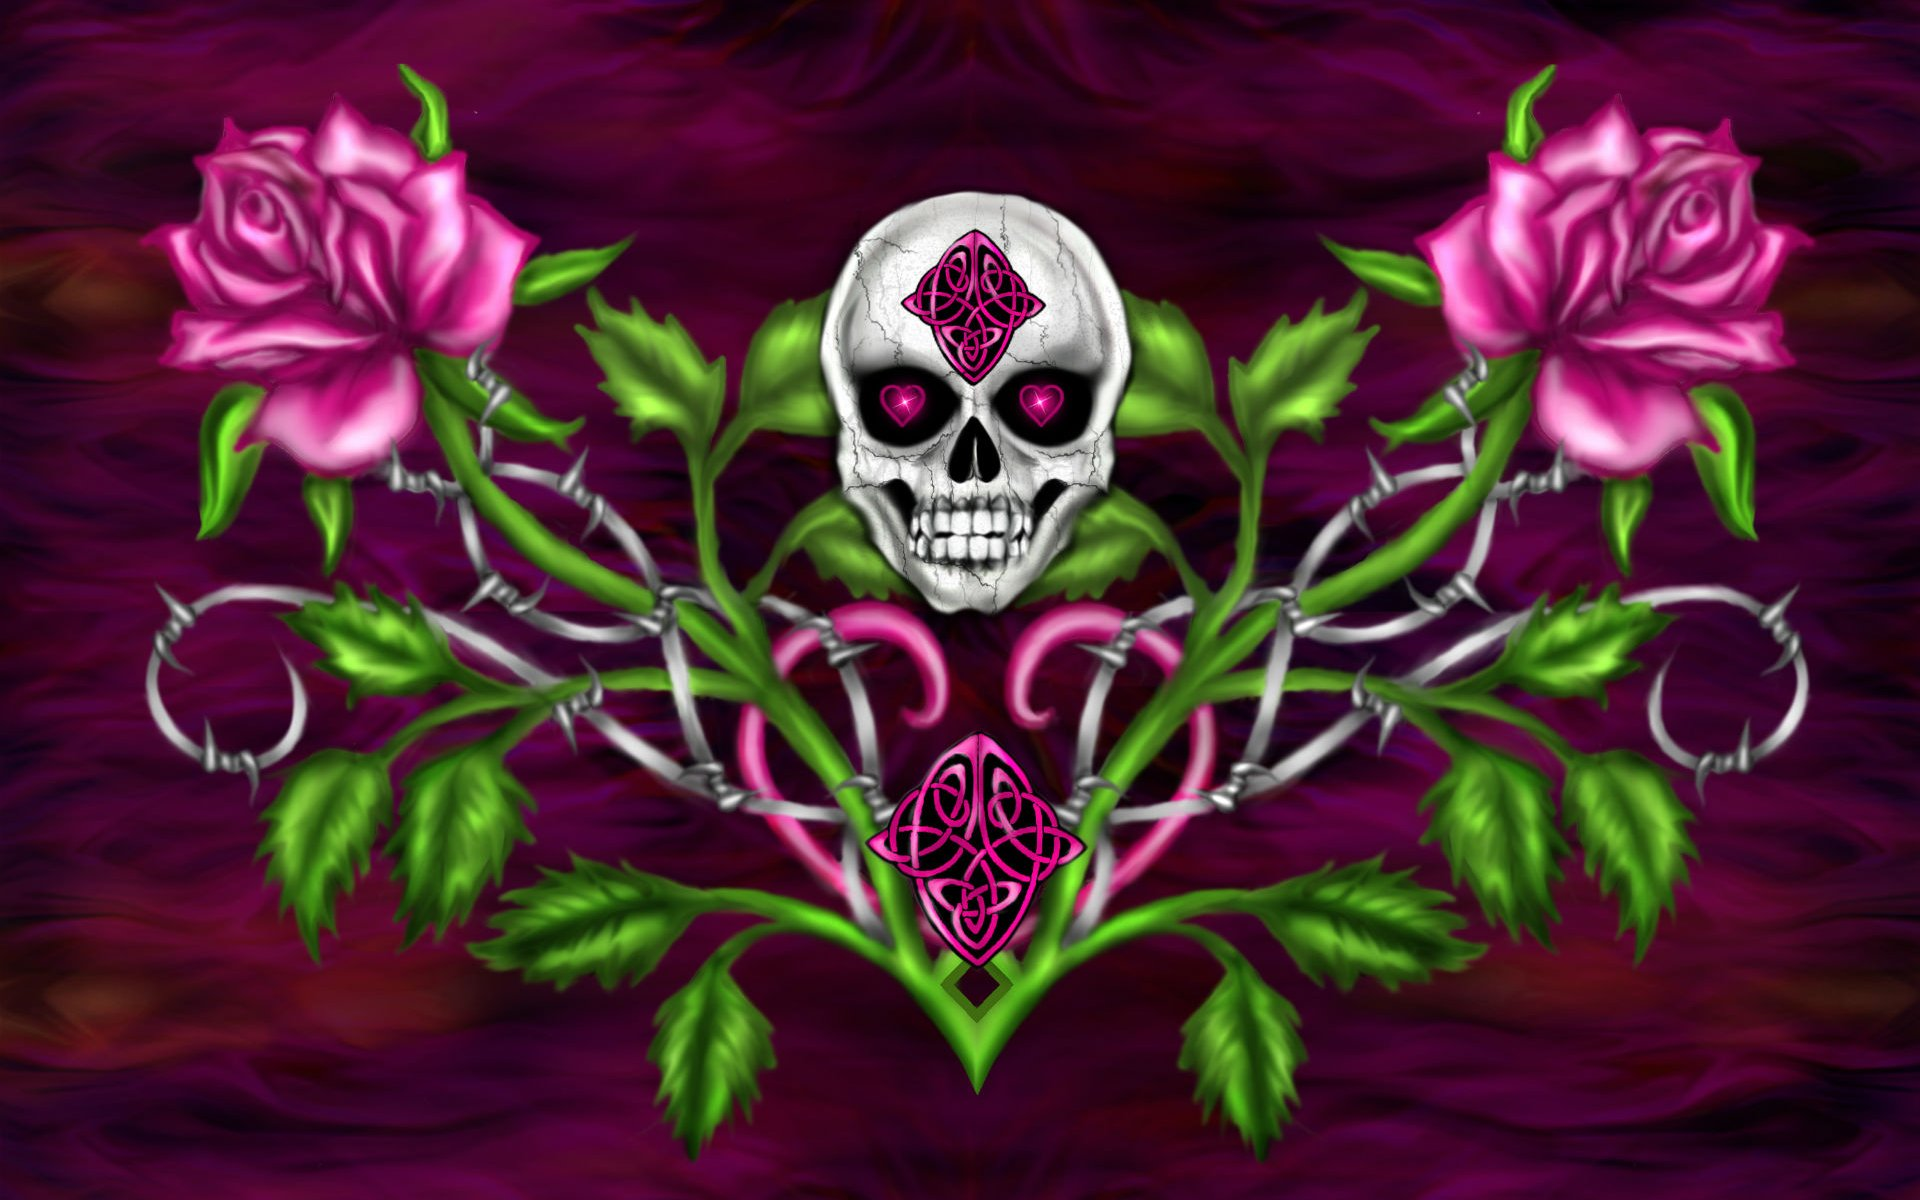 Skull And Pink Roses Hd Wallpaper Background Image 1920x1200